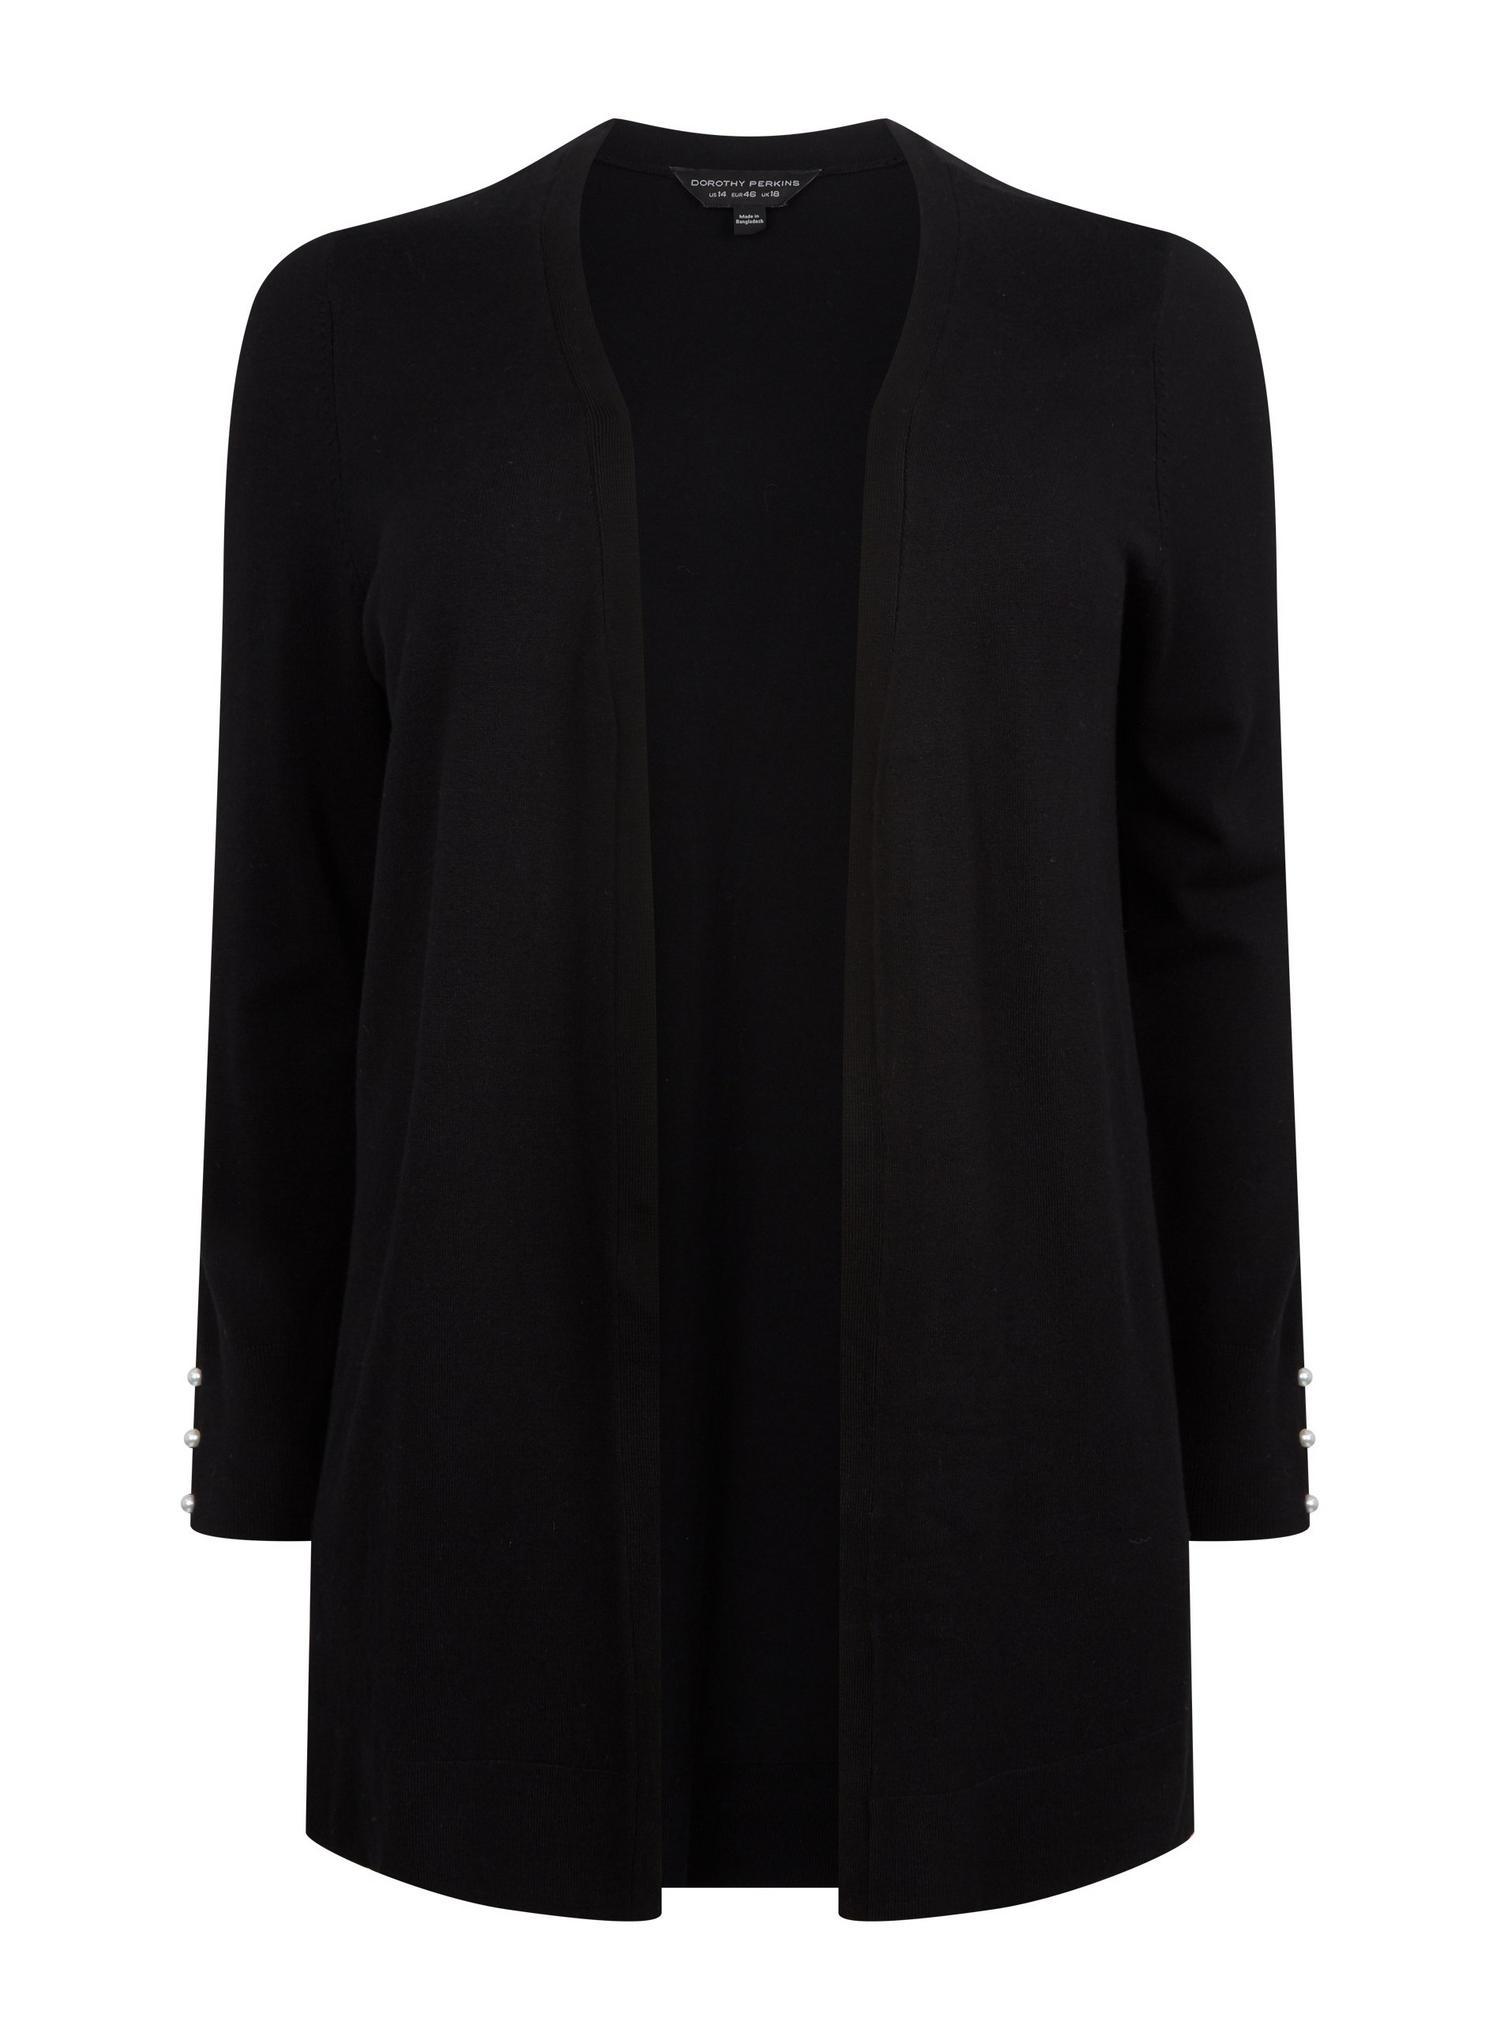 105 Curve Black Cardigan image number 2